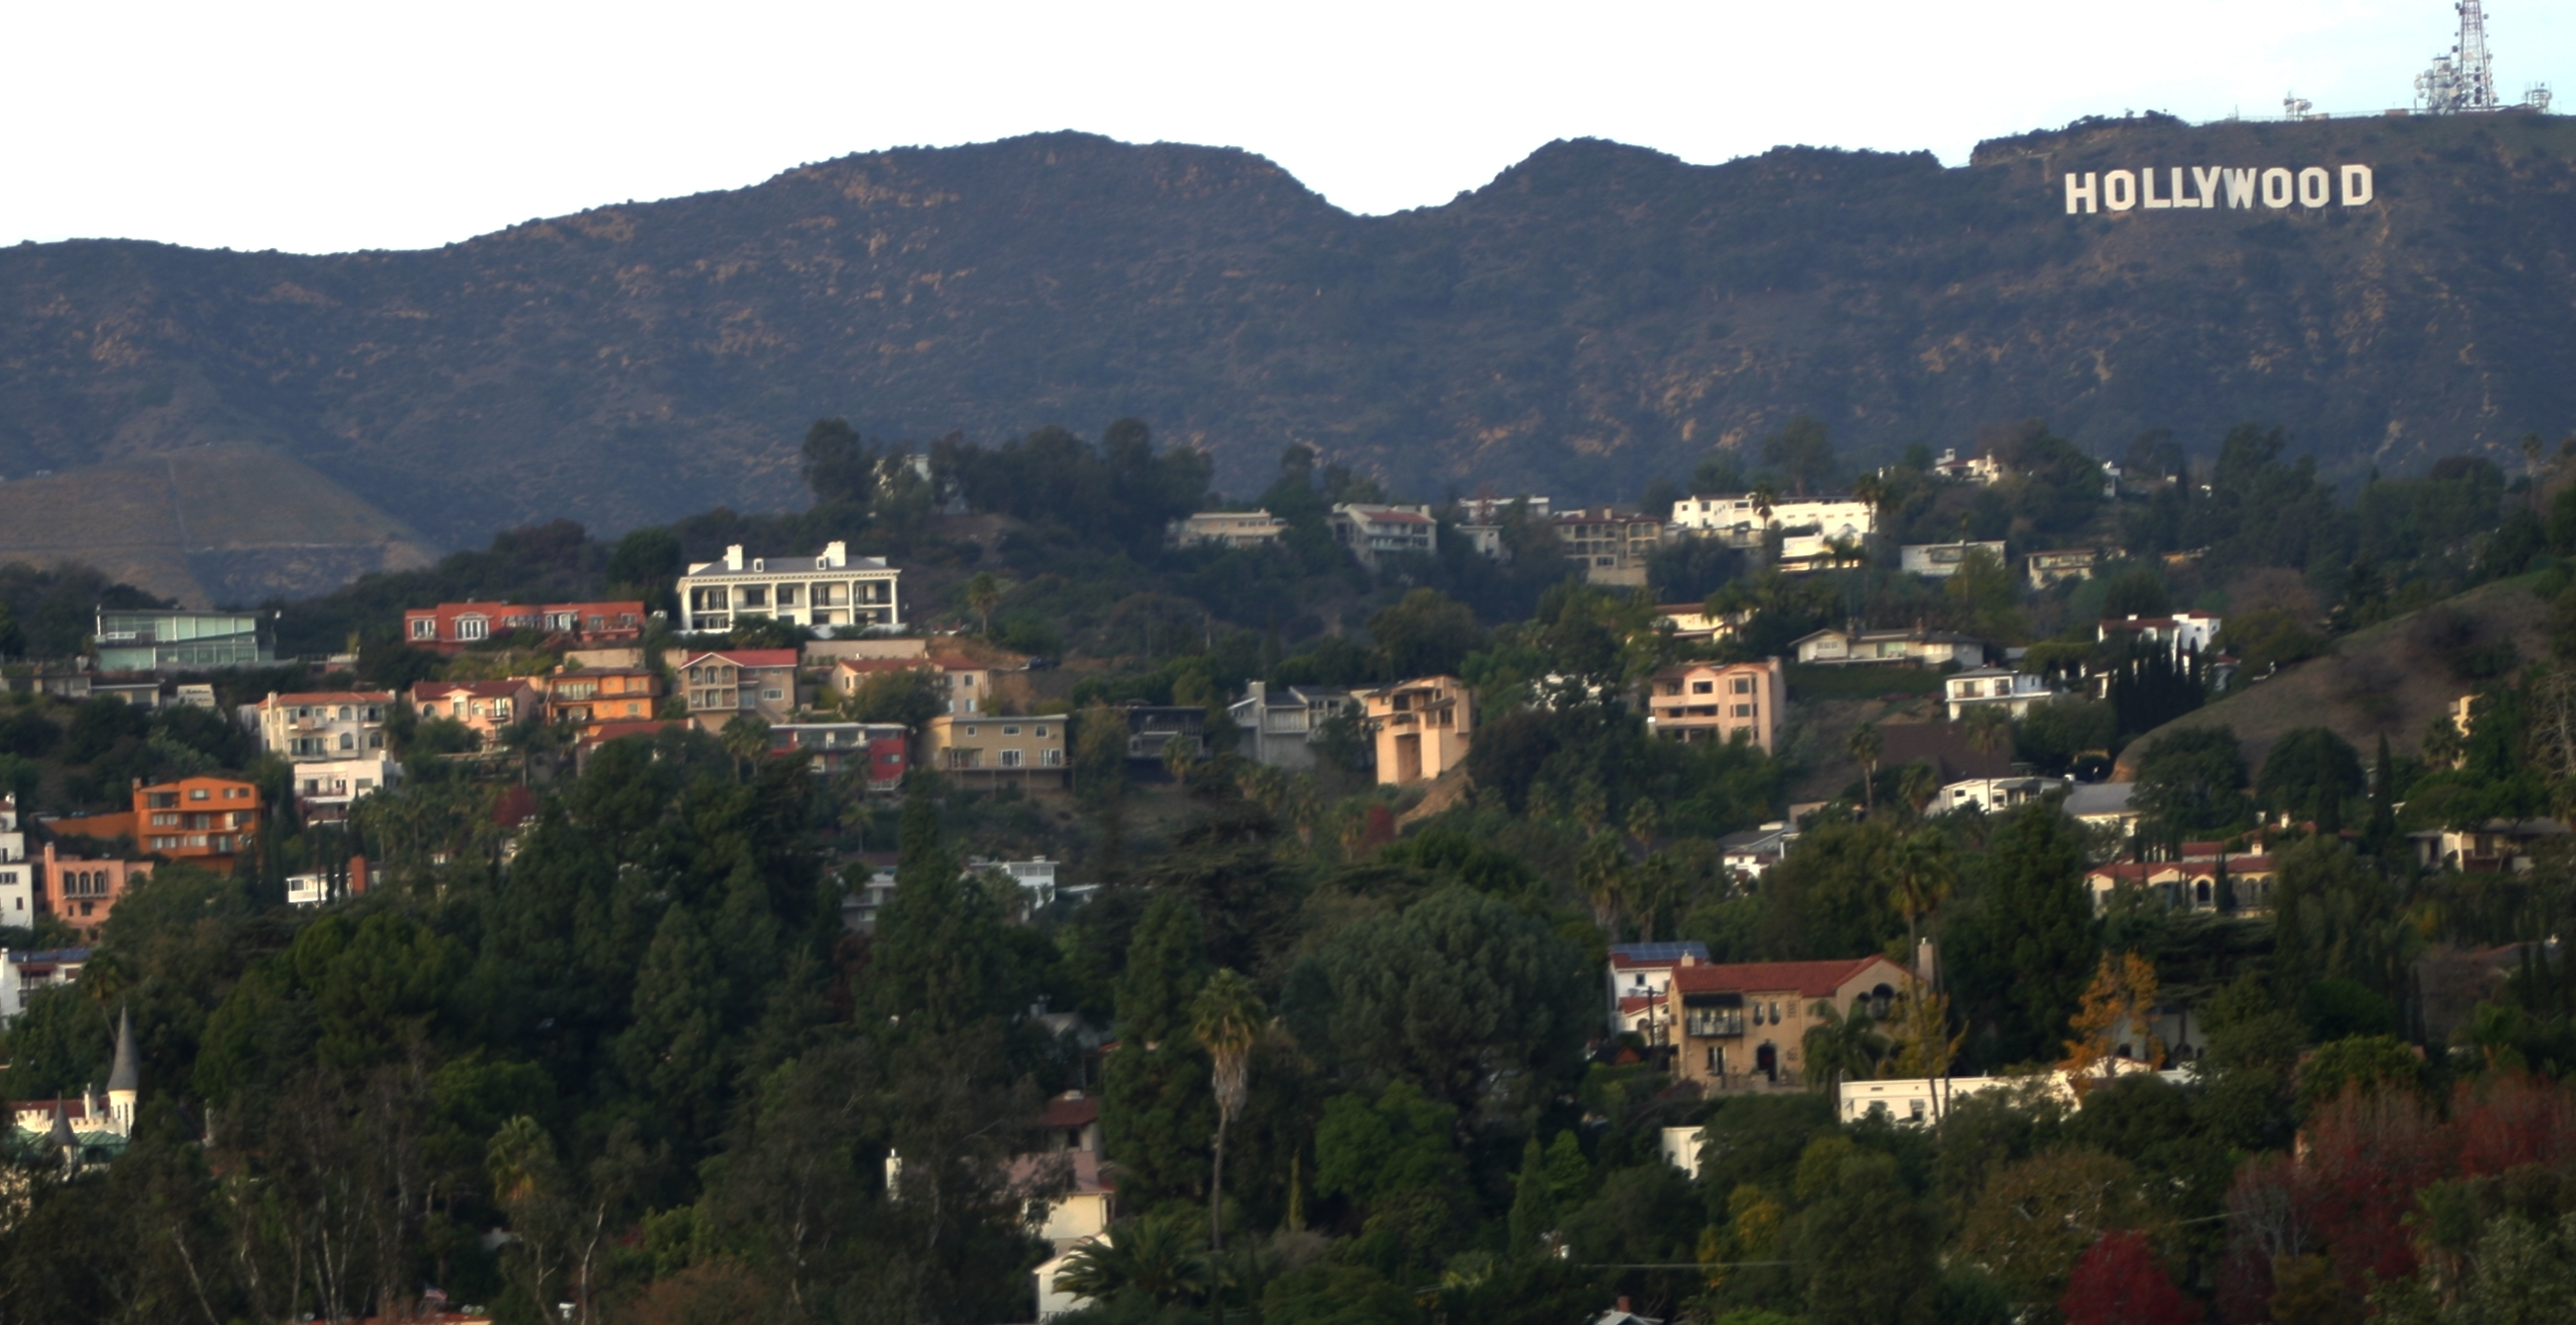 FileHollywood Hills With Hollywood Sign